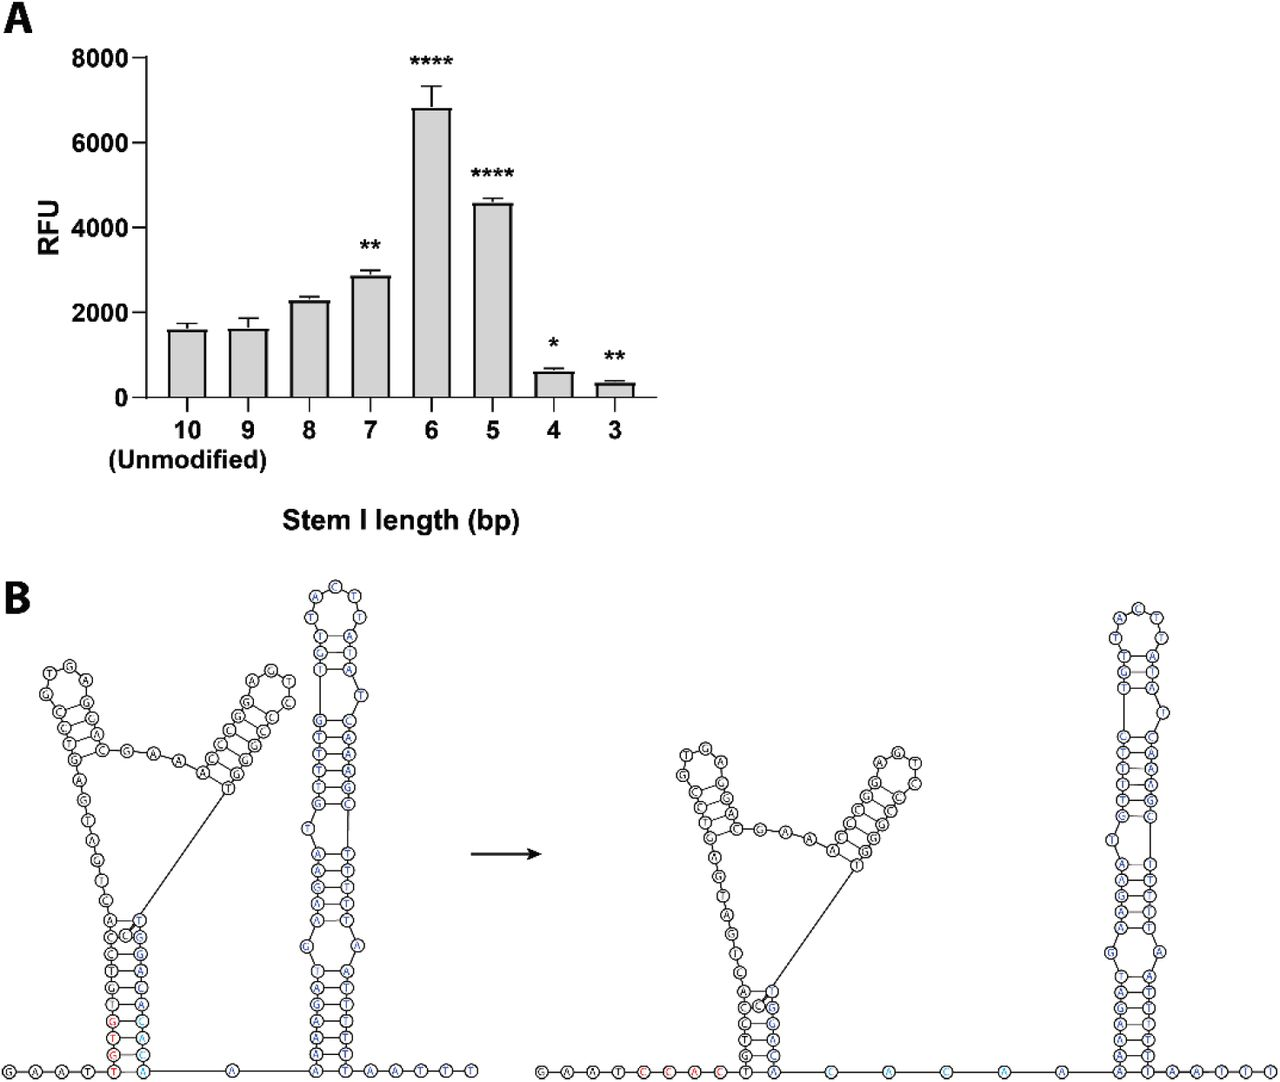 Shortening the ribozyme stem increases minigenome activity. (A) Transfection of HEK293T cells with different mutants of the pCAGGS-HHRz-3M-eGFP-5M minigenome shows that minigenome activity can be increased by reducing complementarity between the ribozyme and the MARV trailer. Shortening by 3-5 nucleotides significantly increases activity, with an optimum at a residual stem length of six base pairs. Data from three independent experiments, done in triplicate. Error bars indicate the standard error of mean. Significance testing was done using one-way ANOVA with Dunnett's test for multiple comparisons: * p